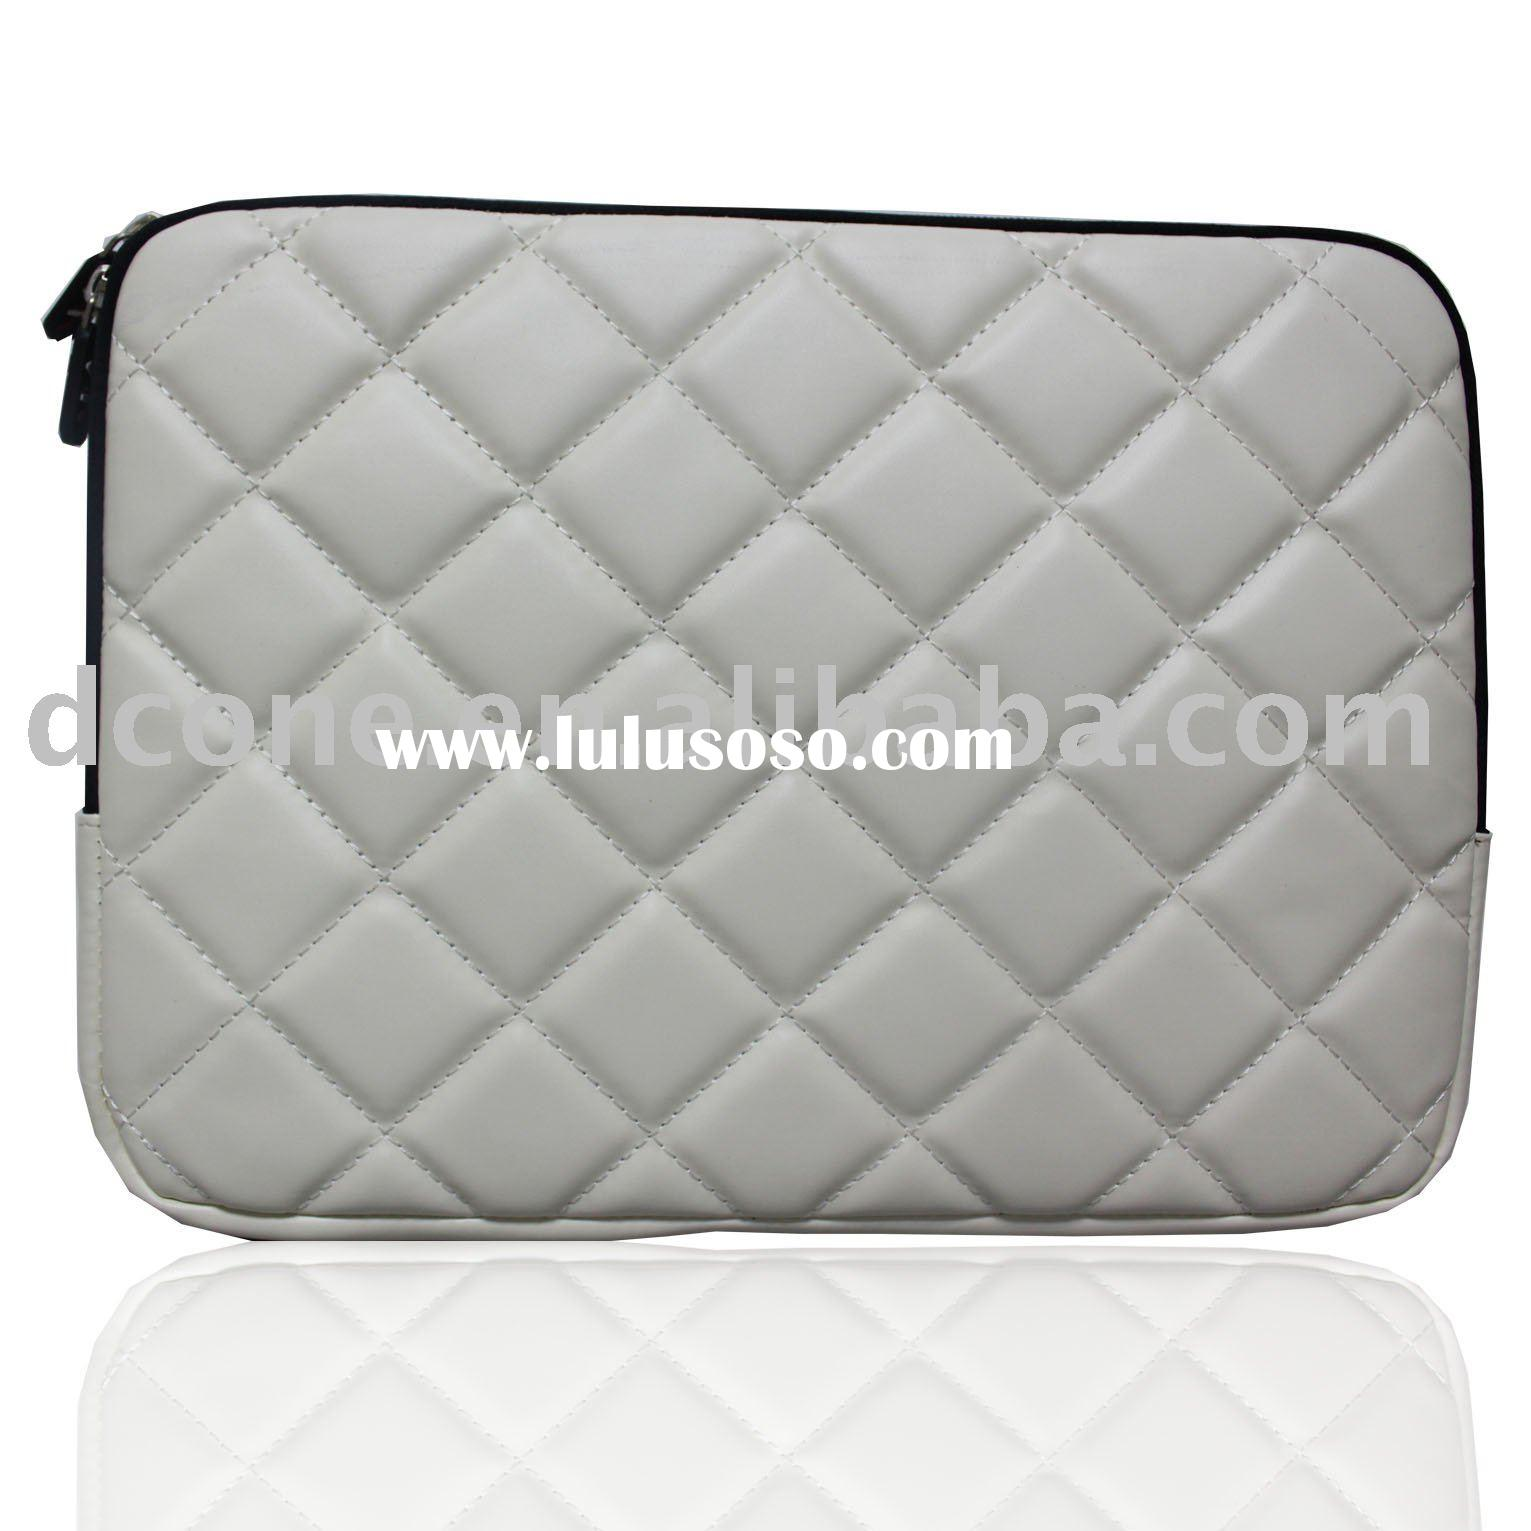 15.4 laptop bag women's laptop bags 17 inch laptop bag